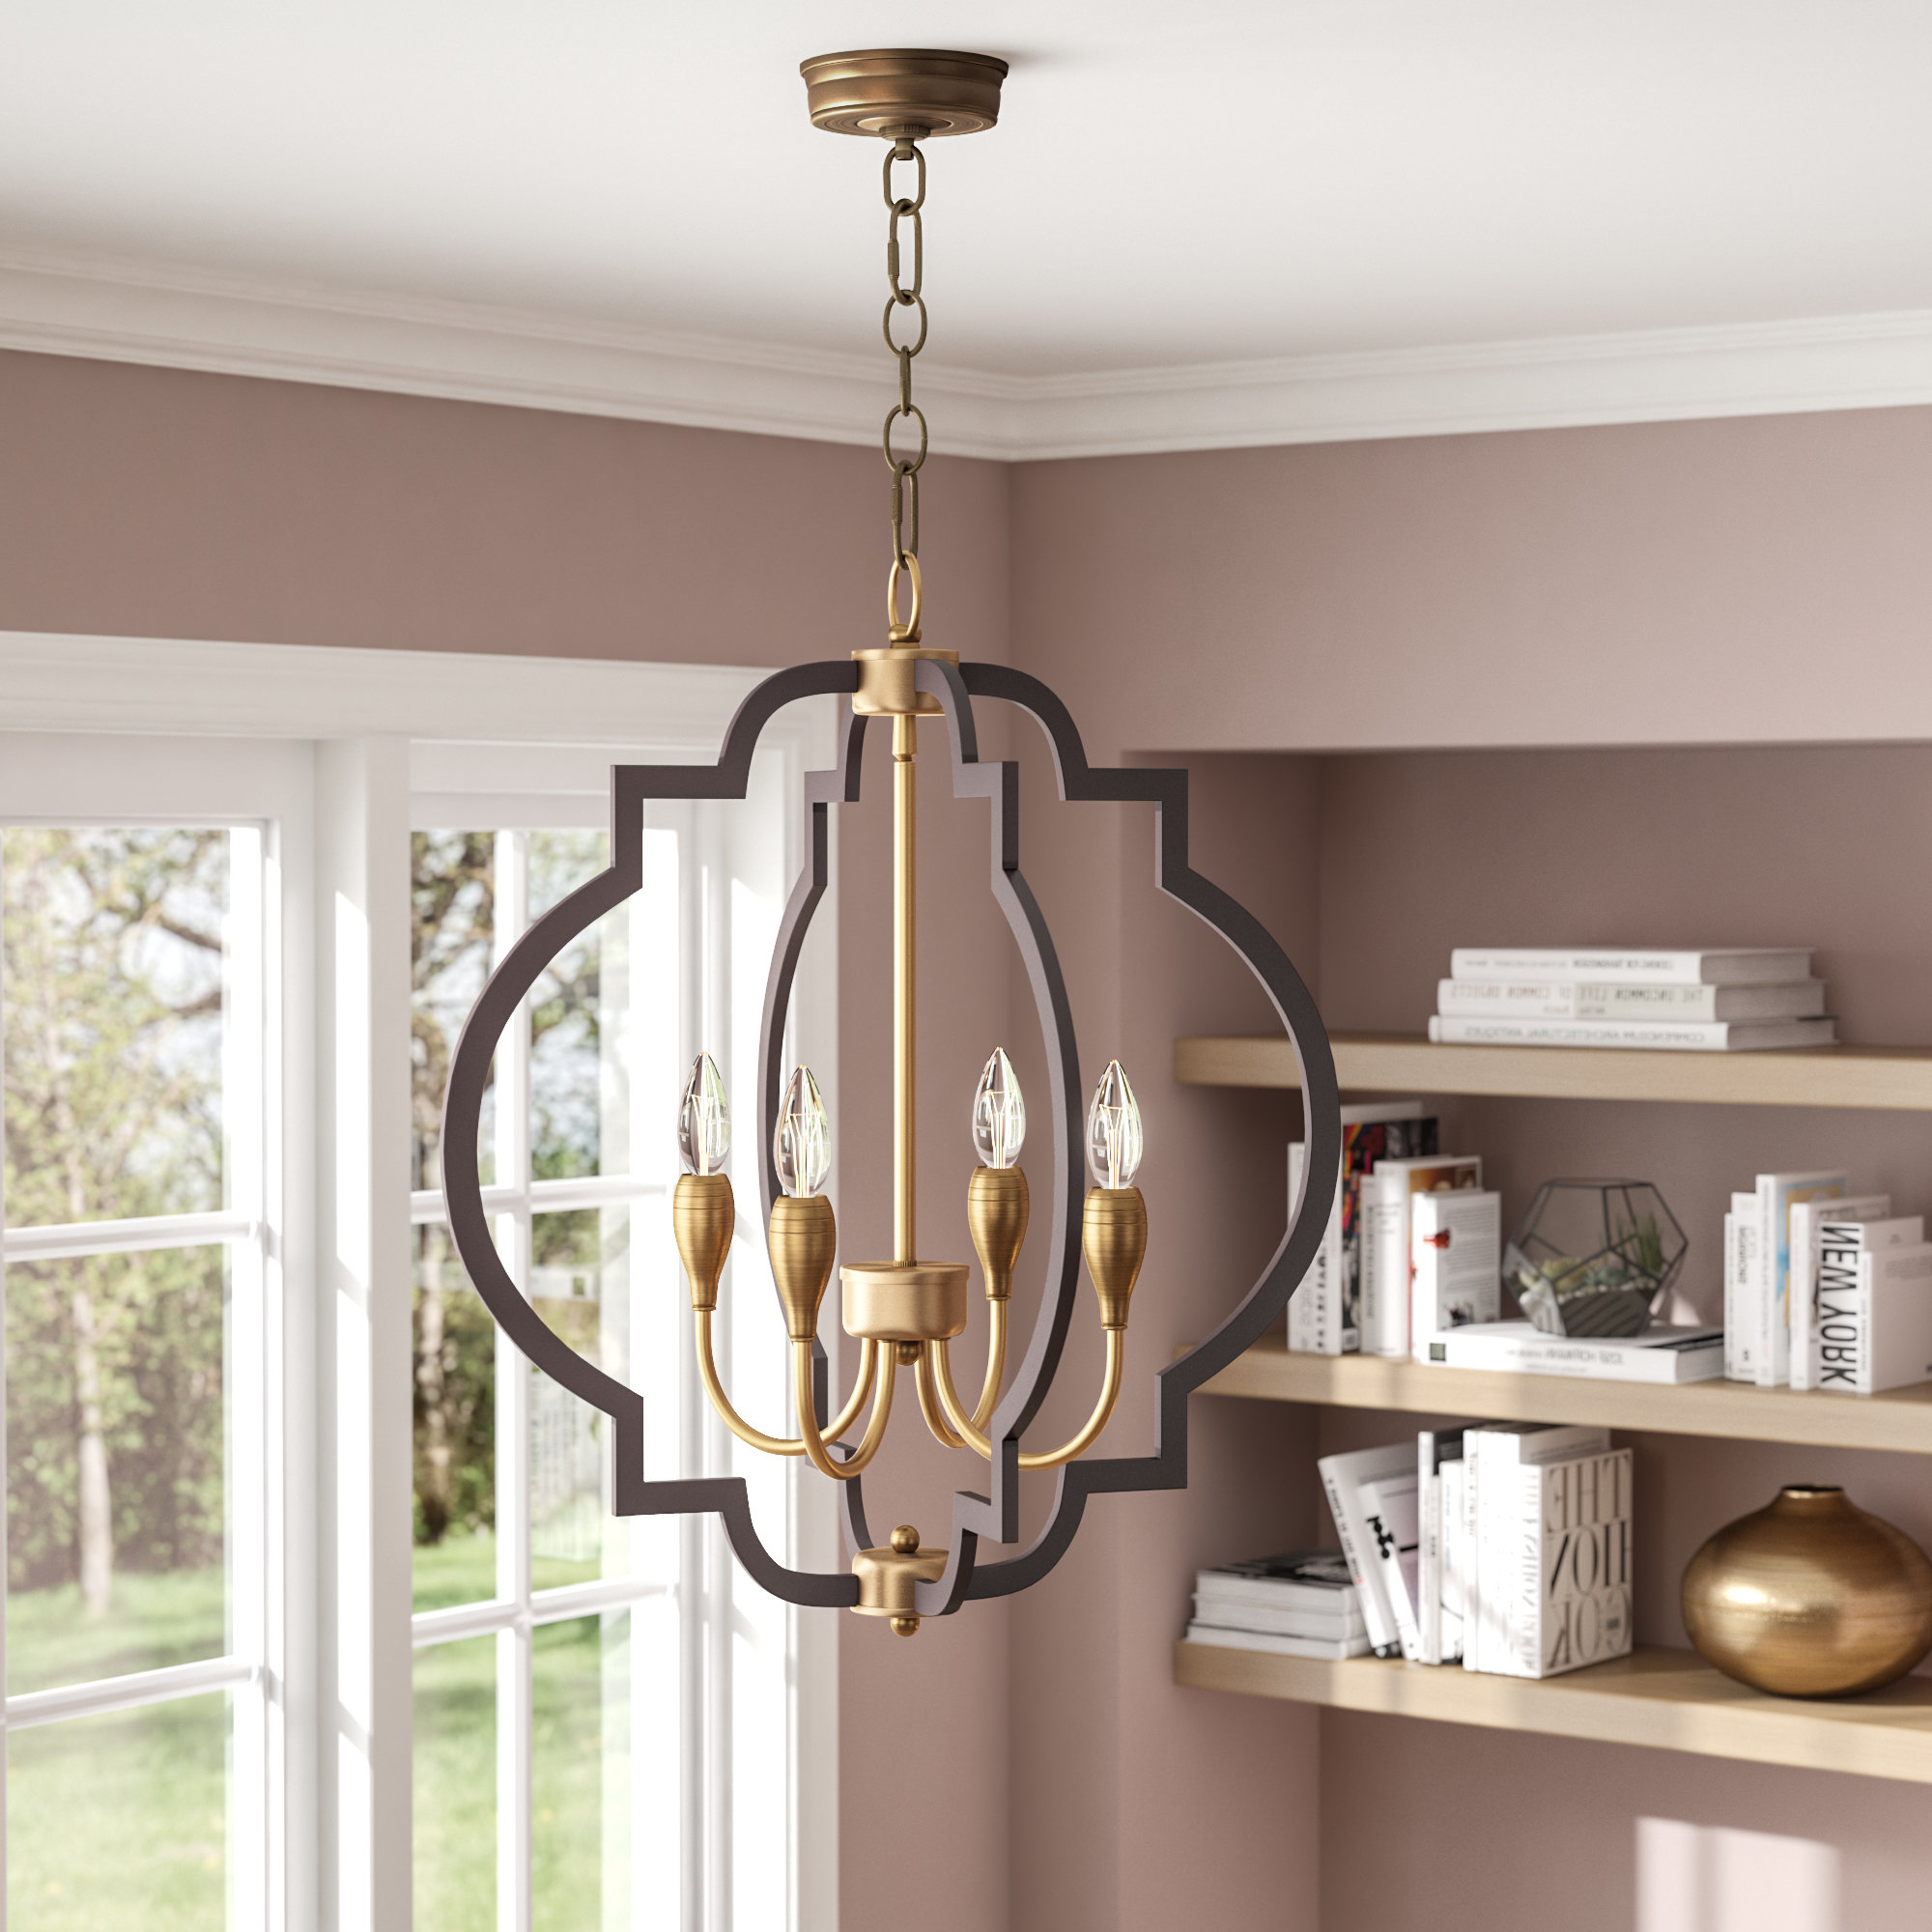 Preferred Astin 4 Light Geometric Chandelier Intended For Reidar 4 Light Geometric Chandeliers (Gallery 7 of 20)